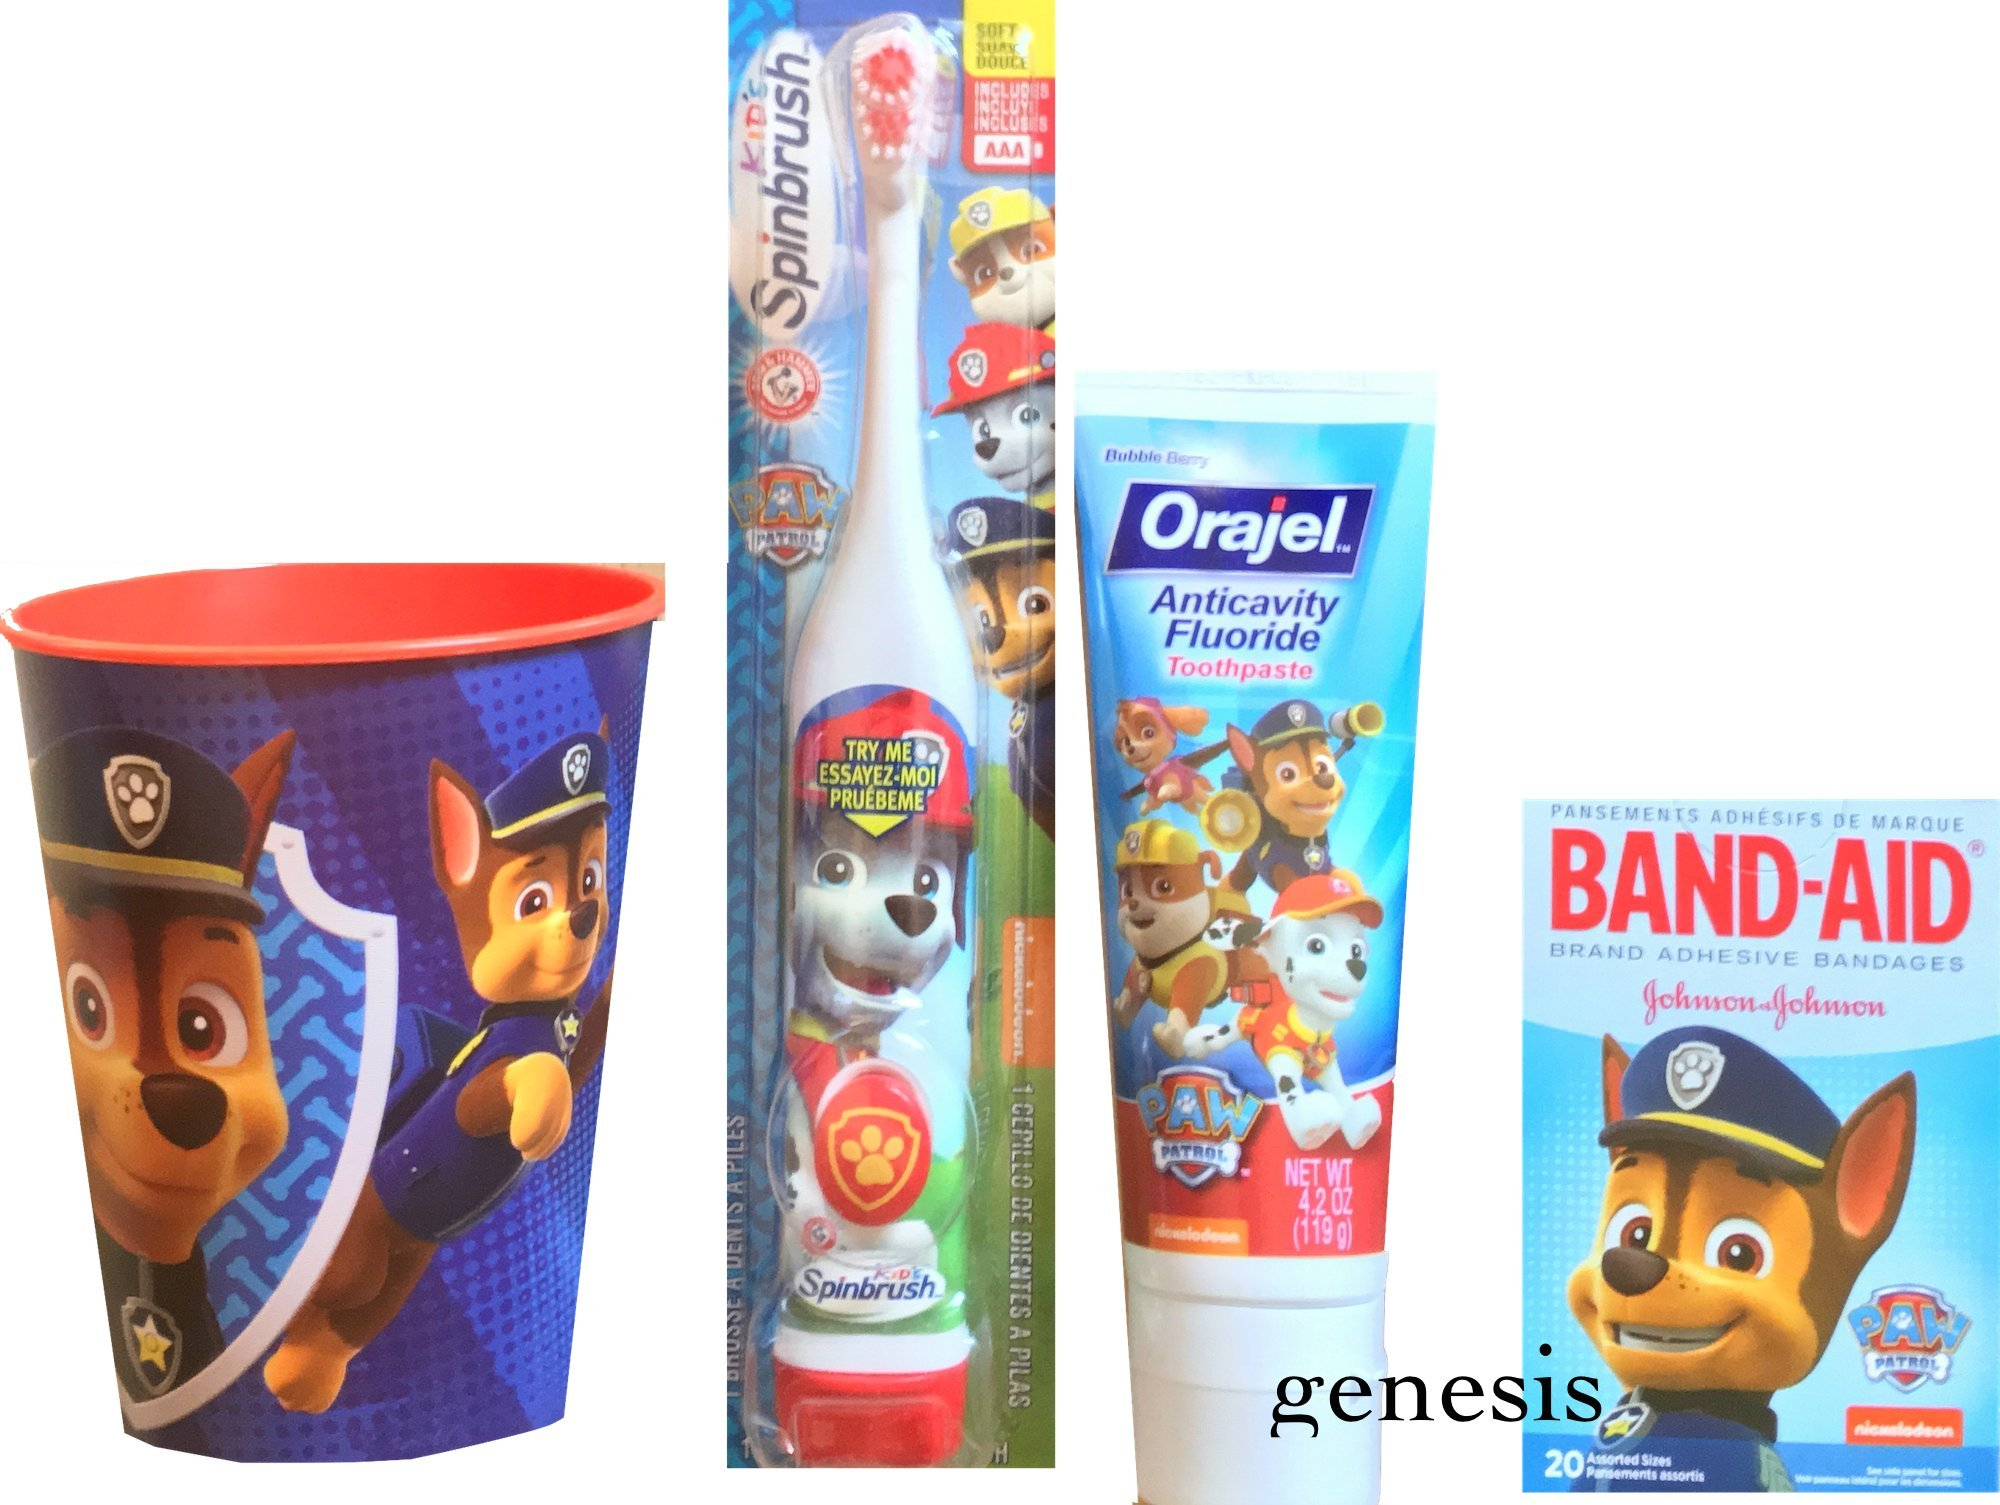 Paw Patrol Children's Oral Hygiene Care Set Powered Toothbrush & Fluoride Toothpaste, Band Aids & Mouth Rinse Cup (Chase)